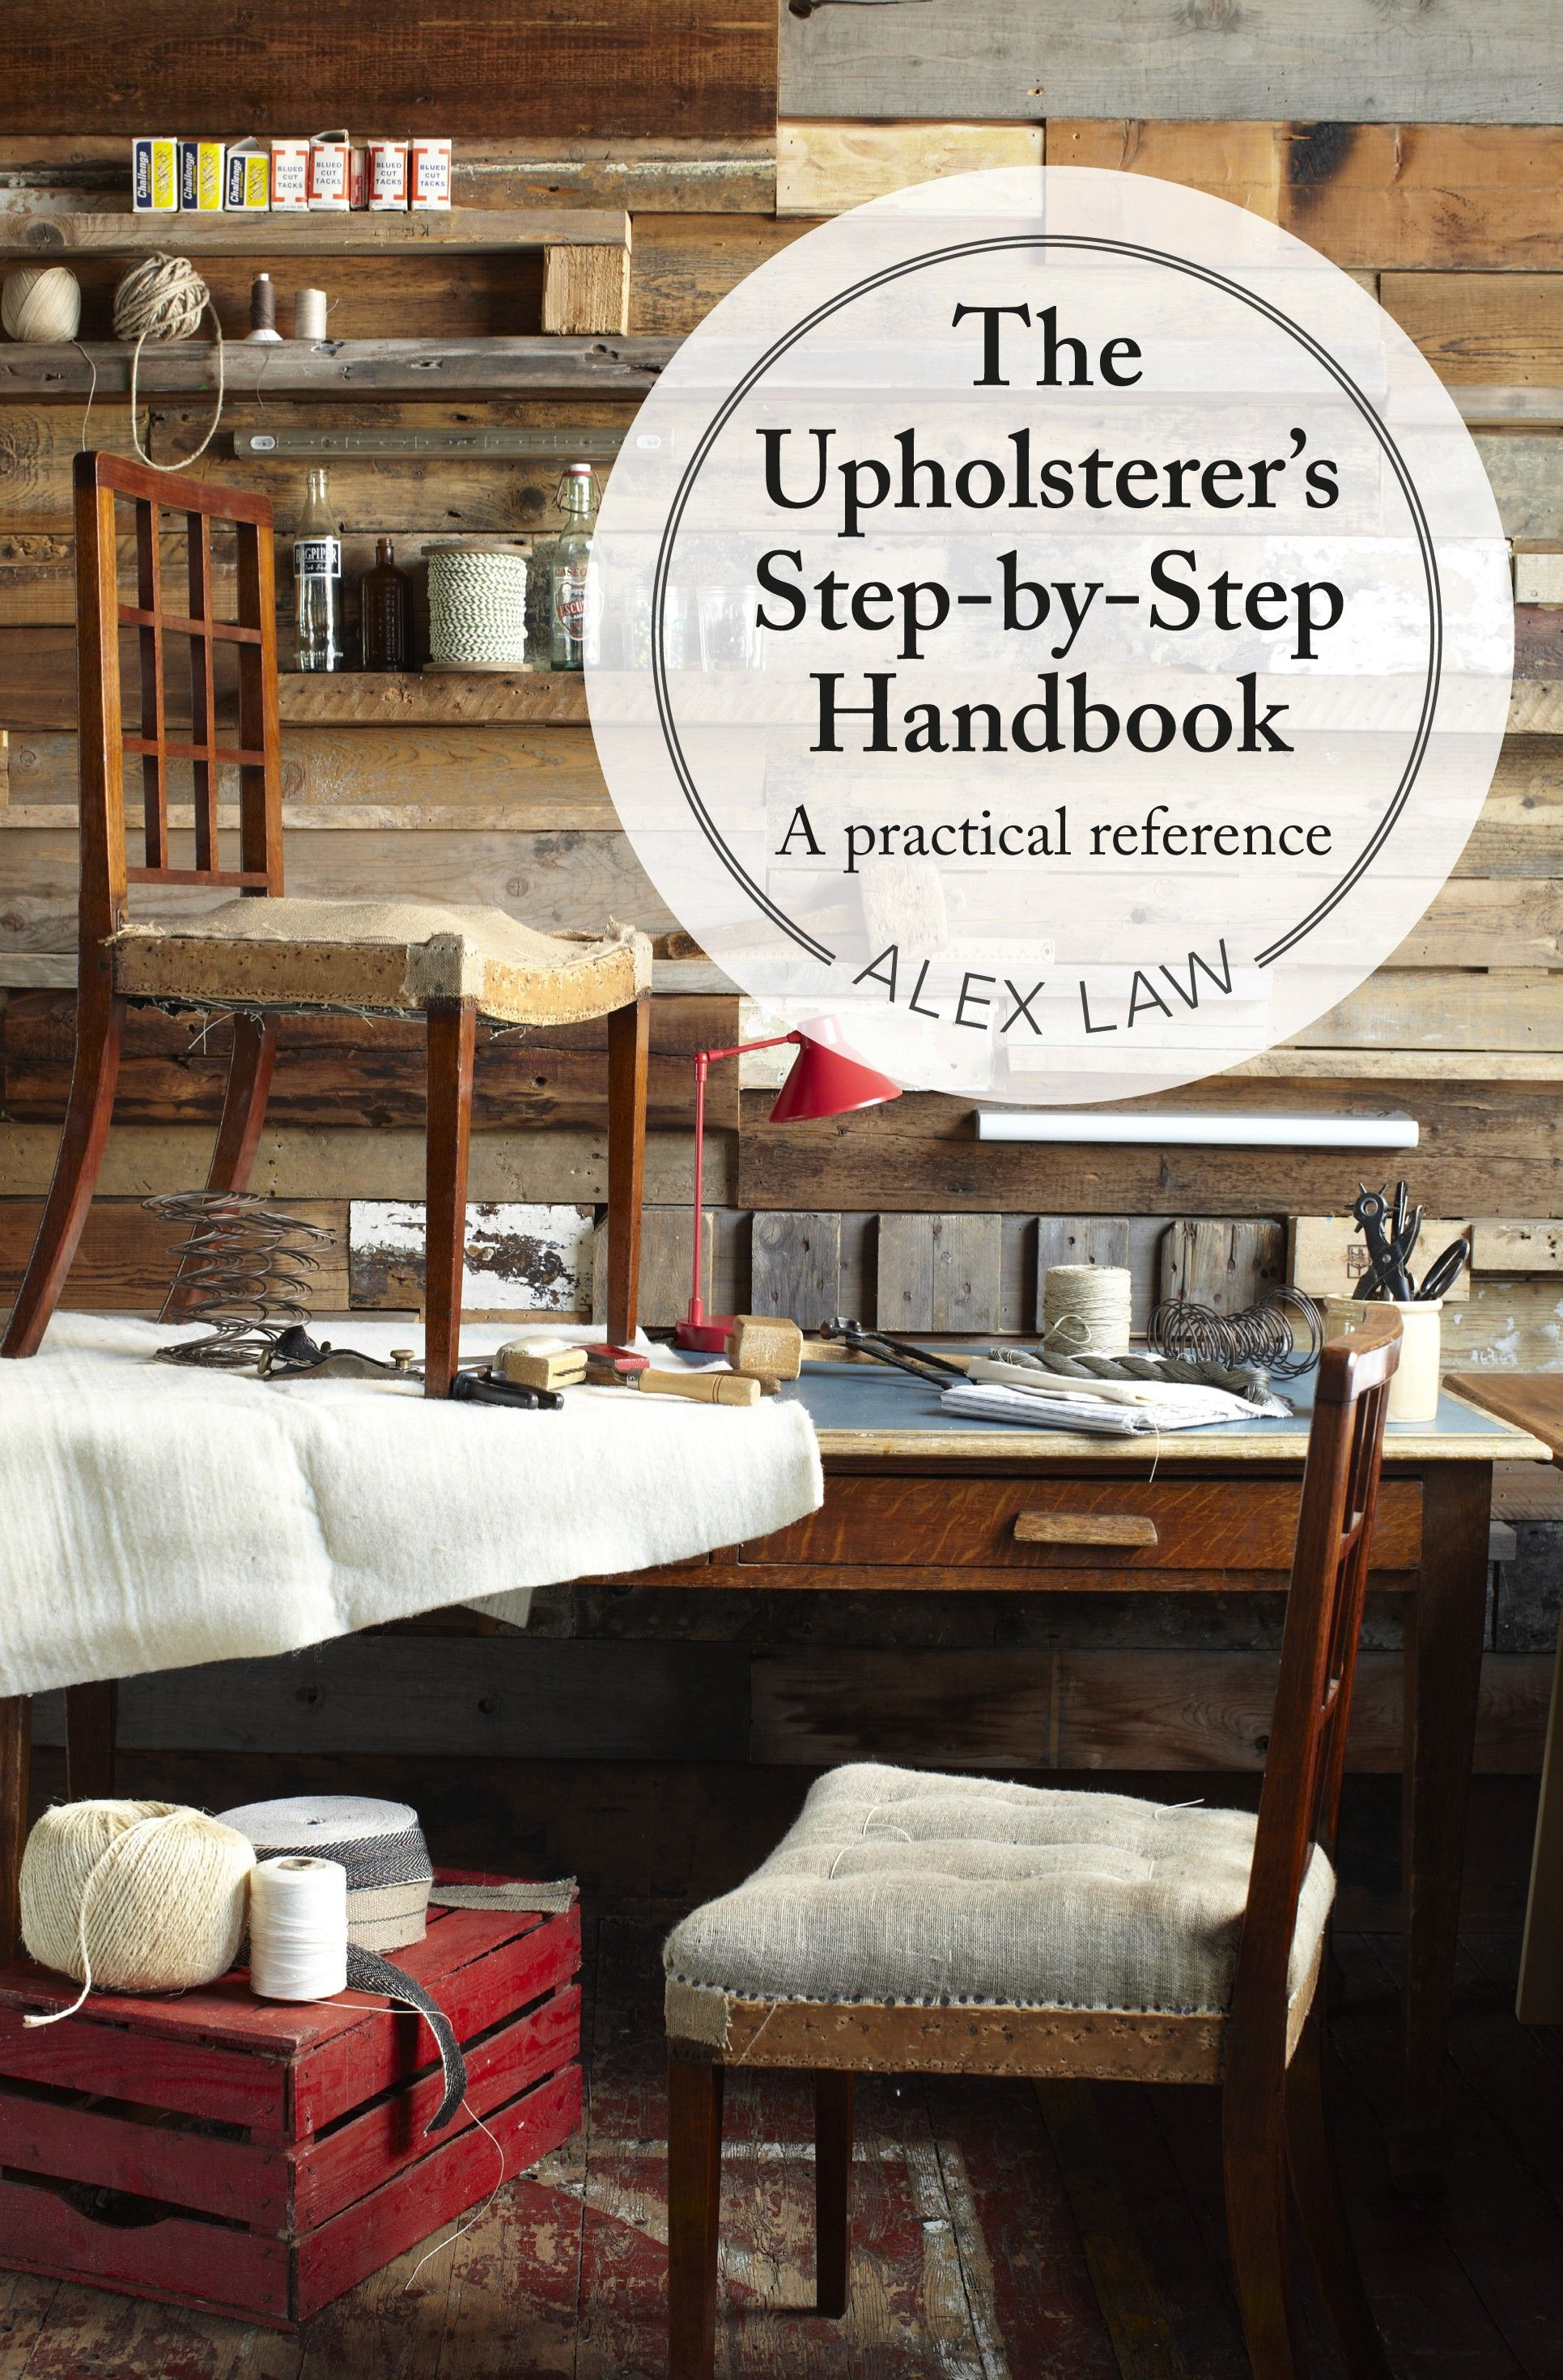 The Upholsterers Step-by-Step Handbook by Alex Law